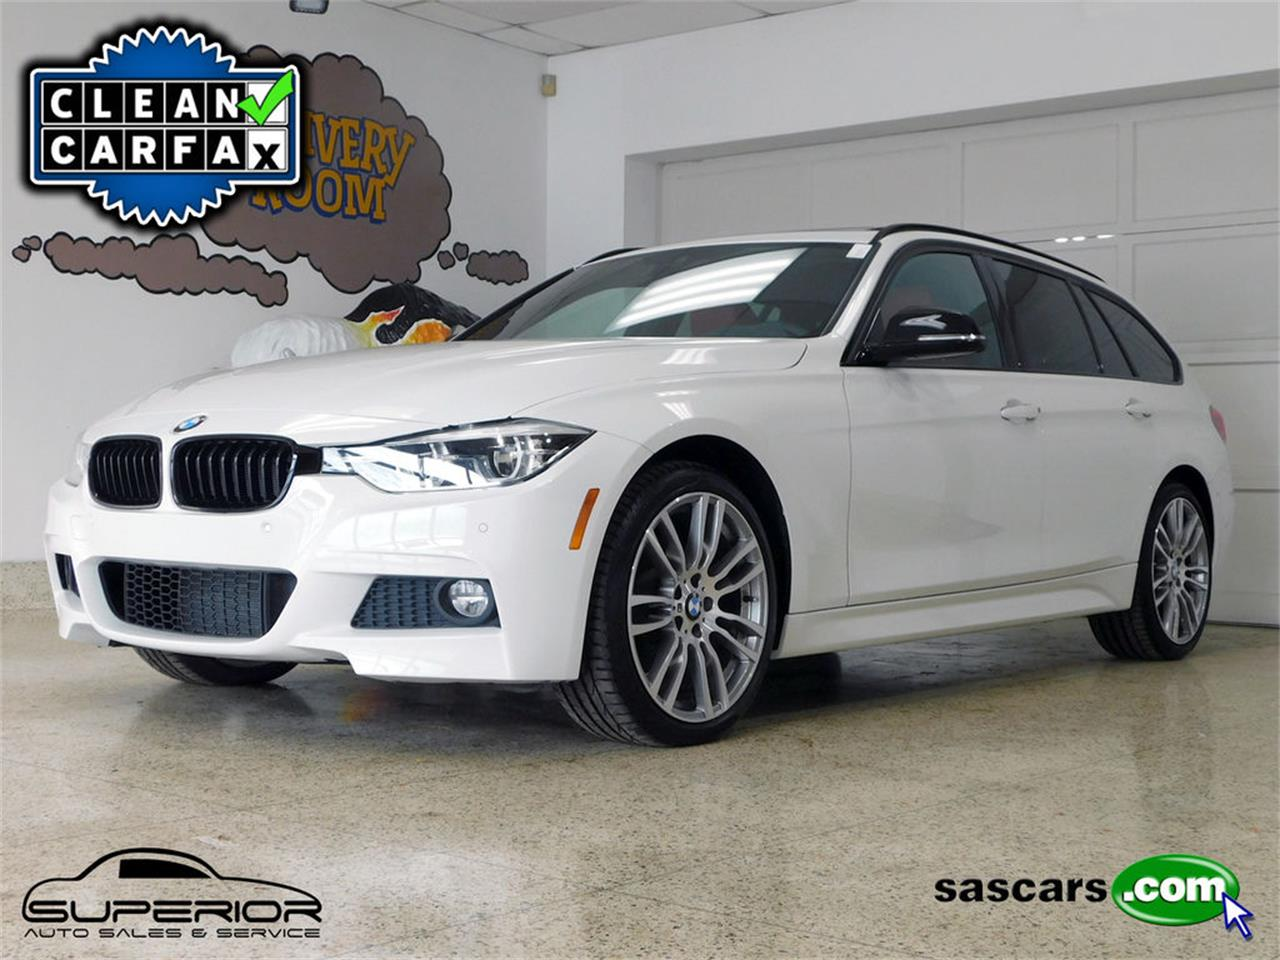 2018 BMW 3 Series (CC-1297242) for sale in Hamburg, New York